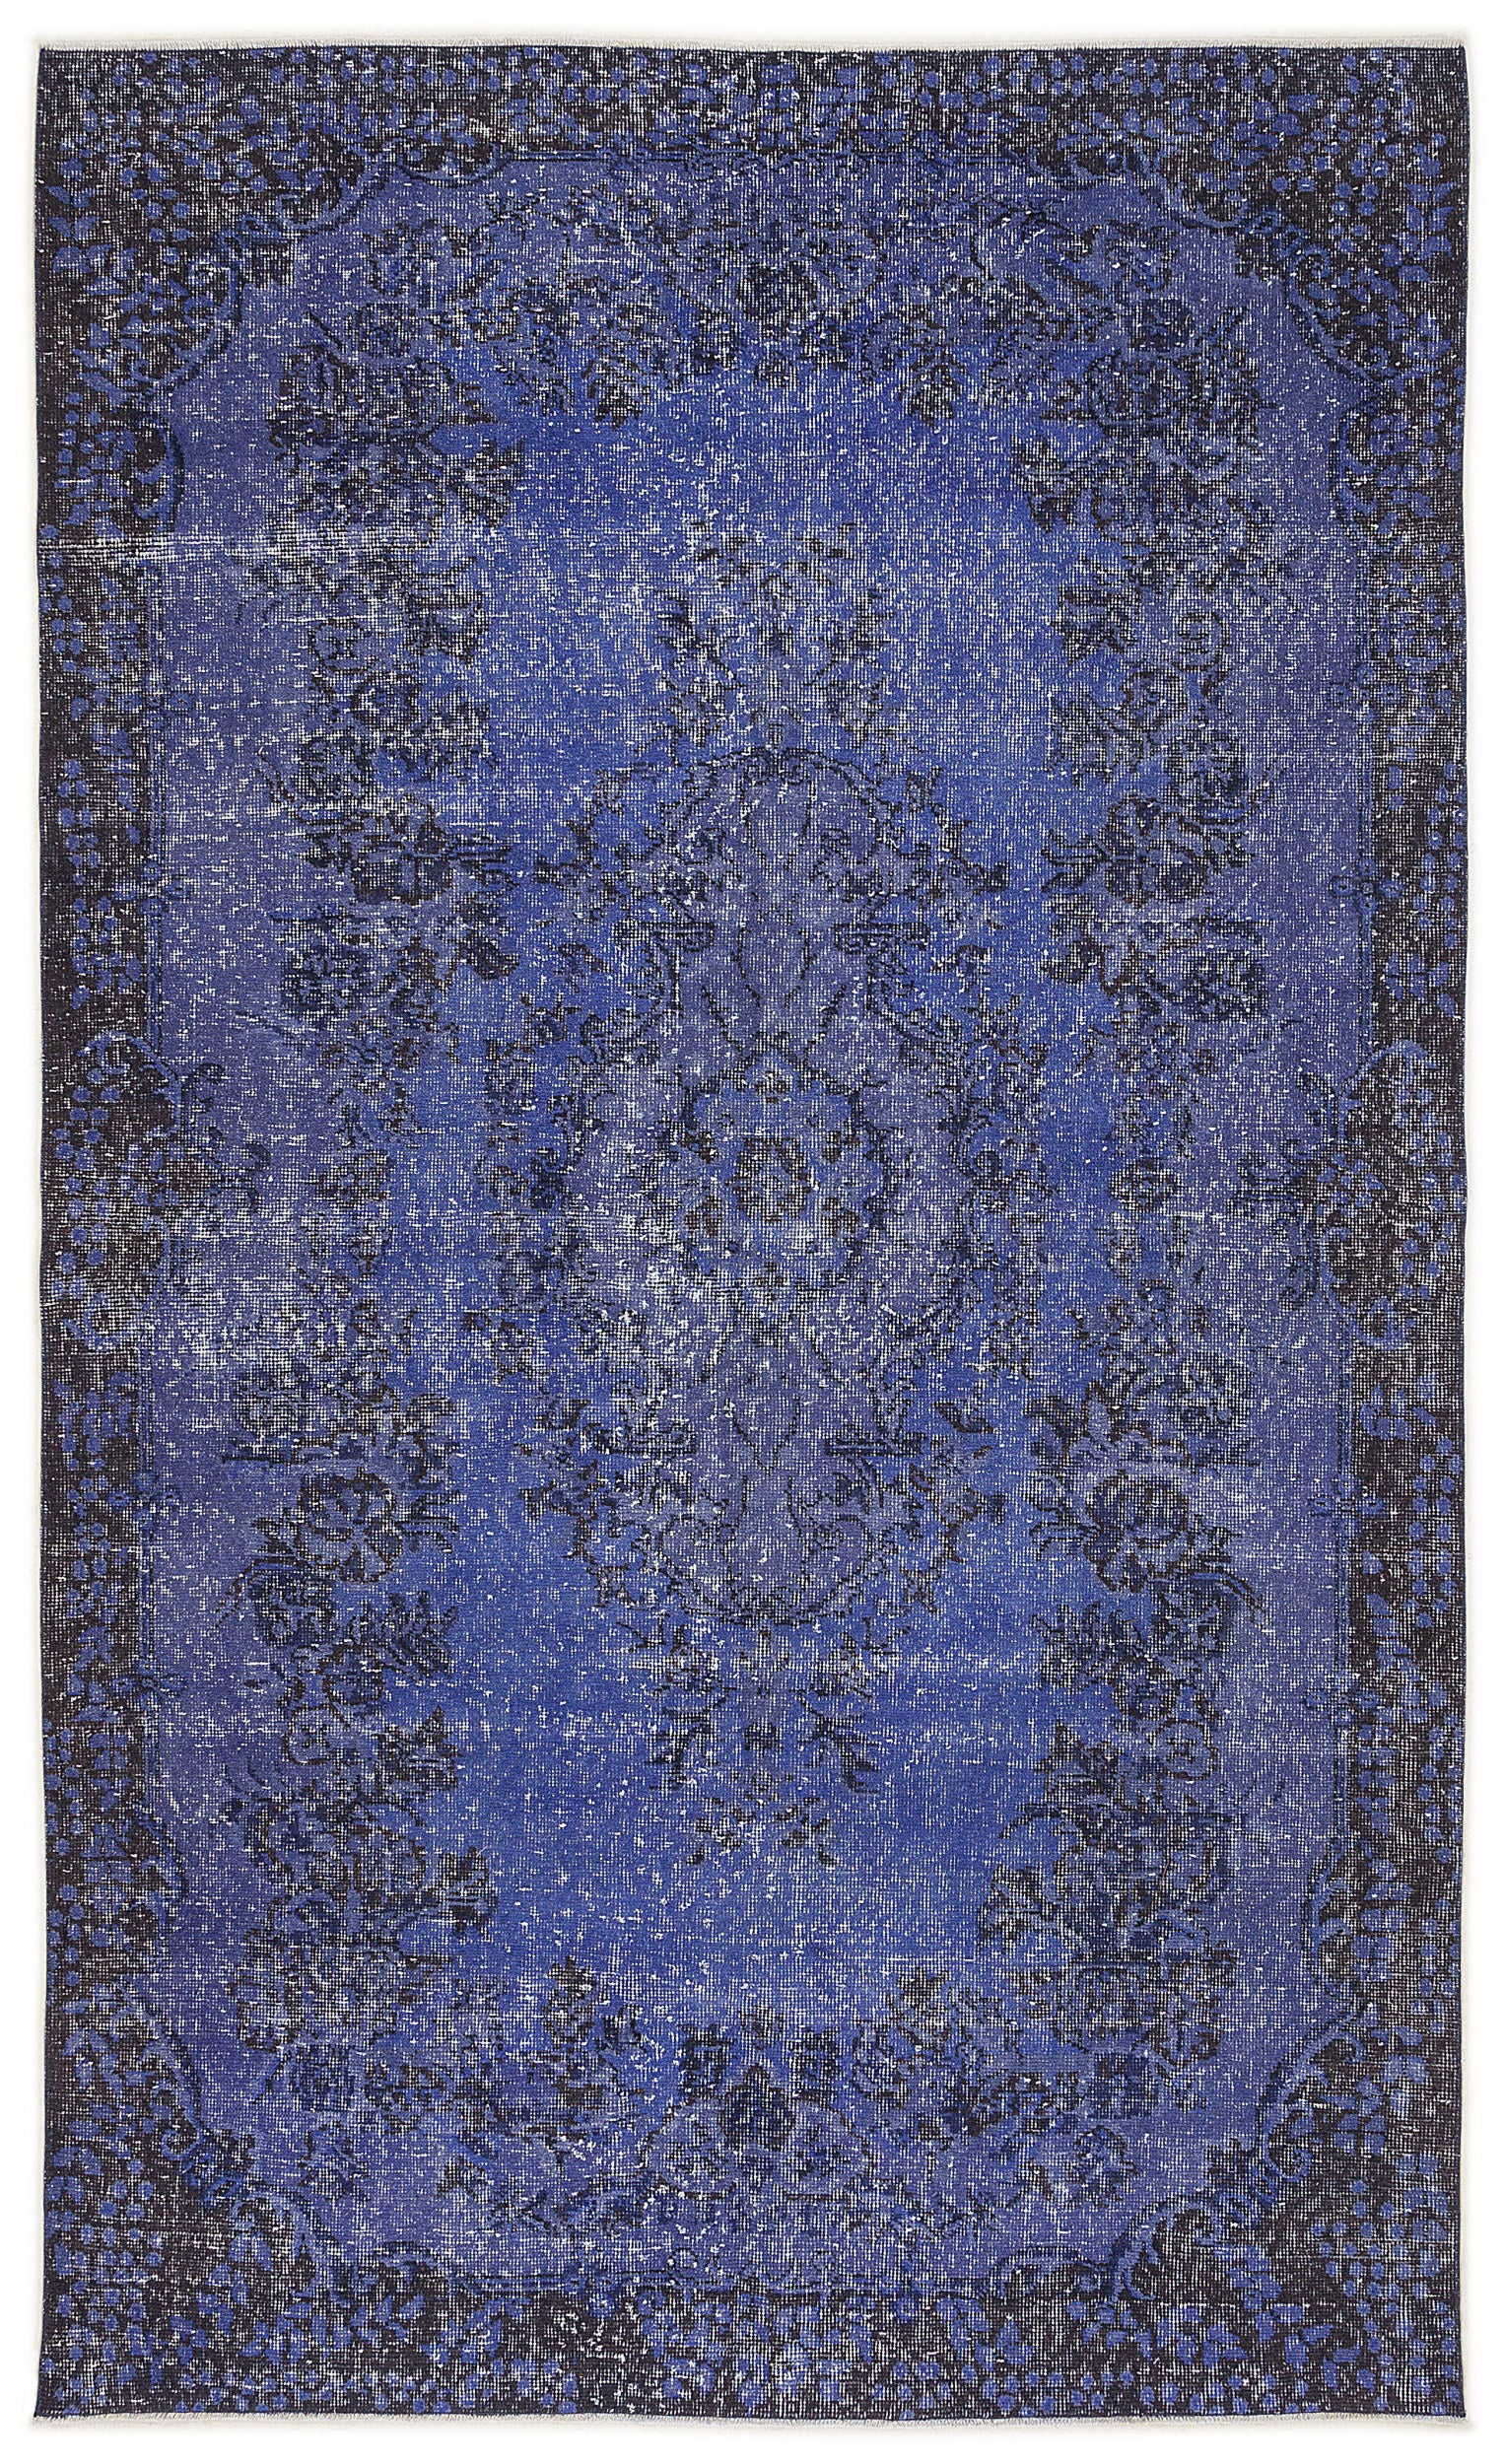 Blue Over Dyed Vintage Rug 5'8'' x 9'5'' ft 173 x 286 cm